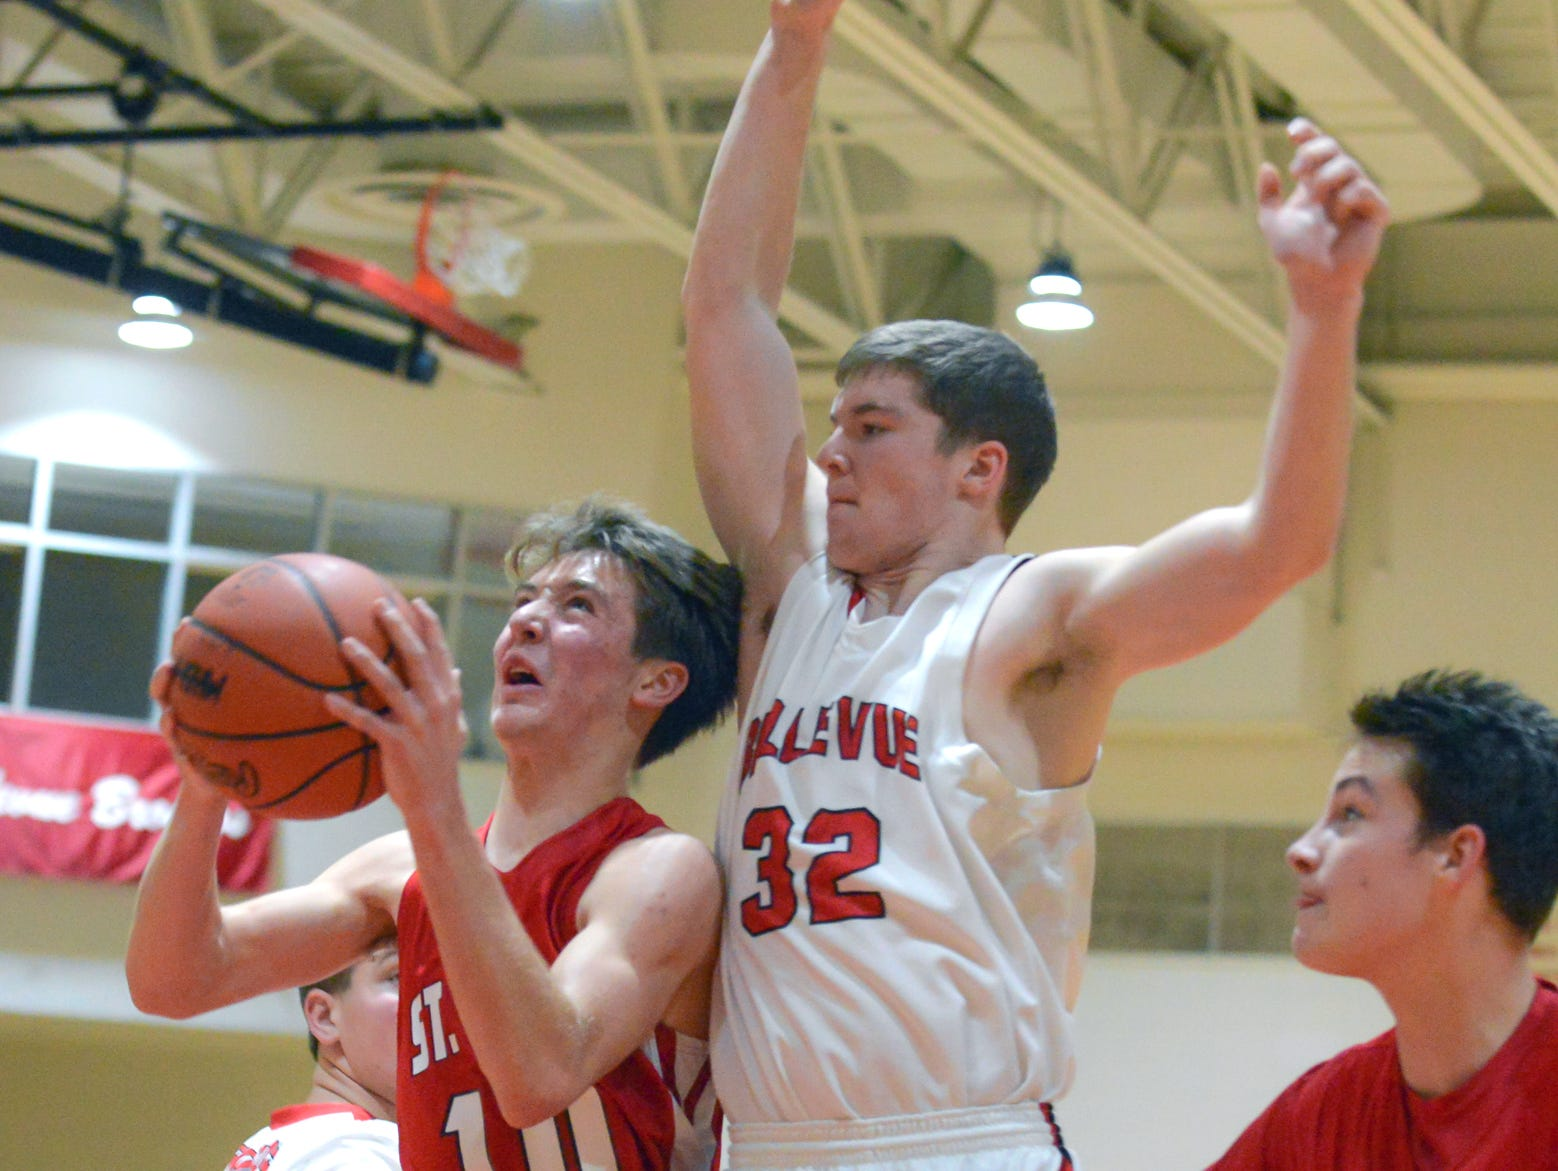 St. Philip's Ben Swagler goes for a lay-up as Bellevue's Ryan Madry works on the block.